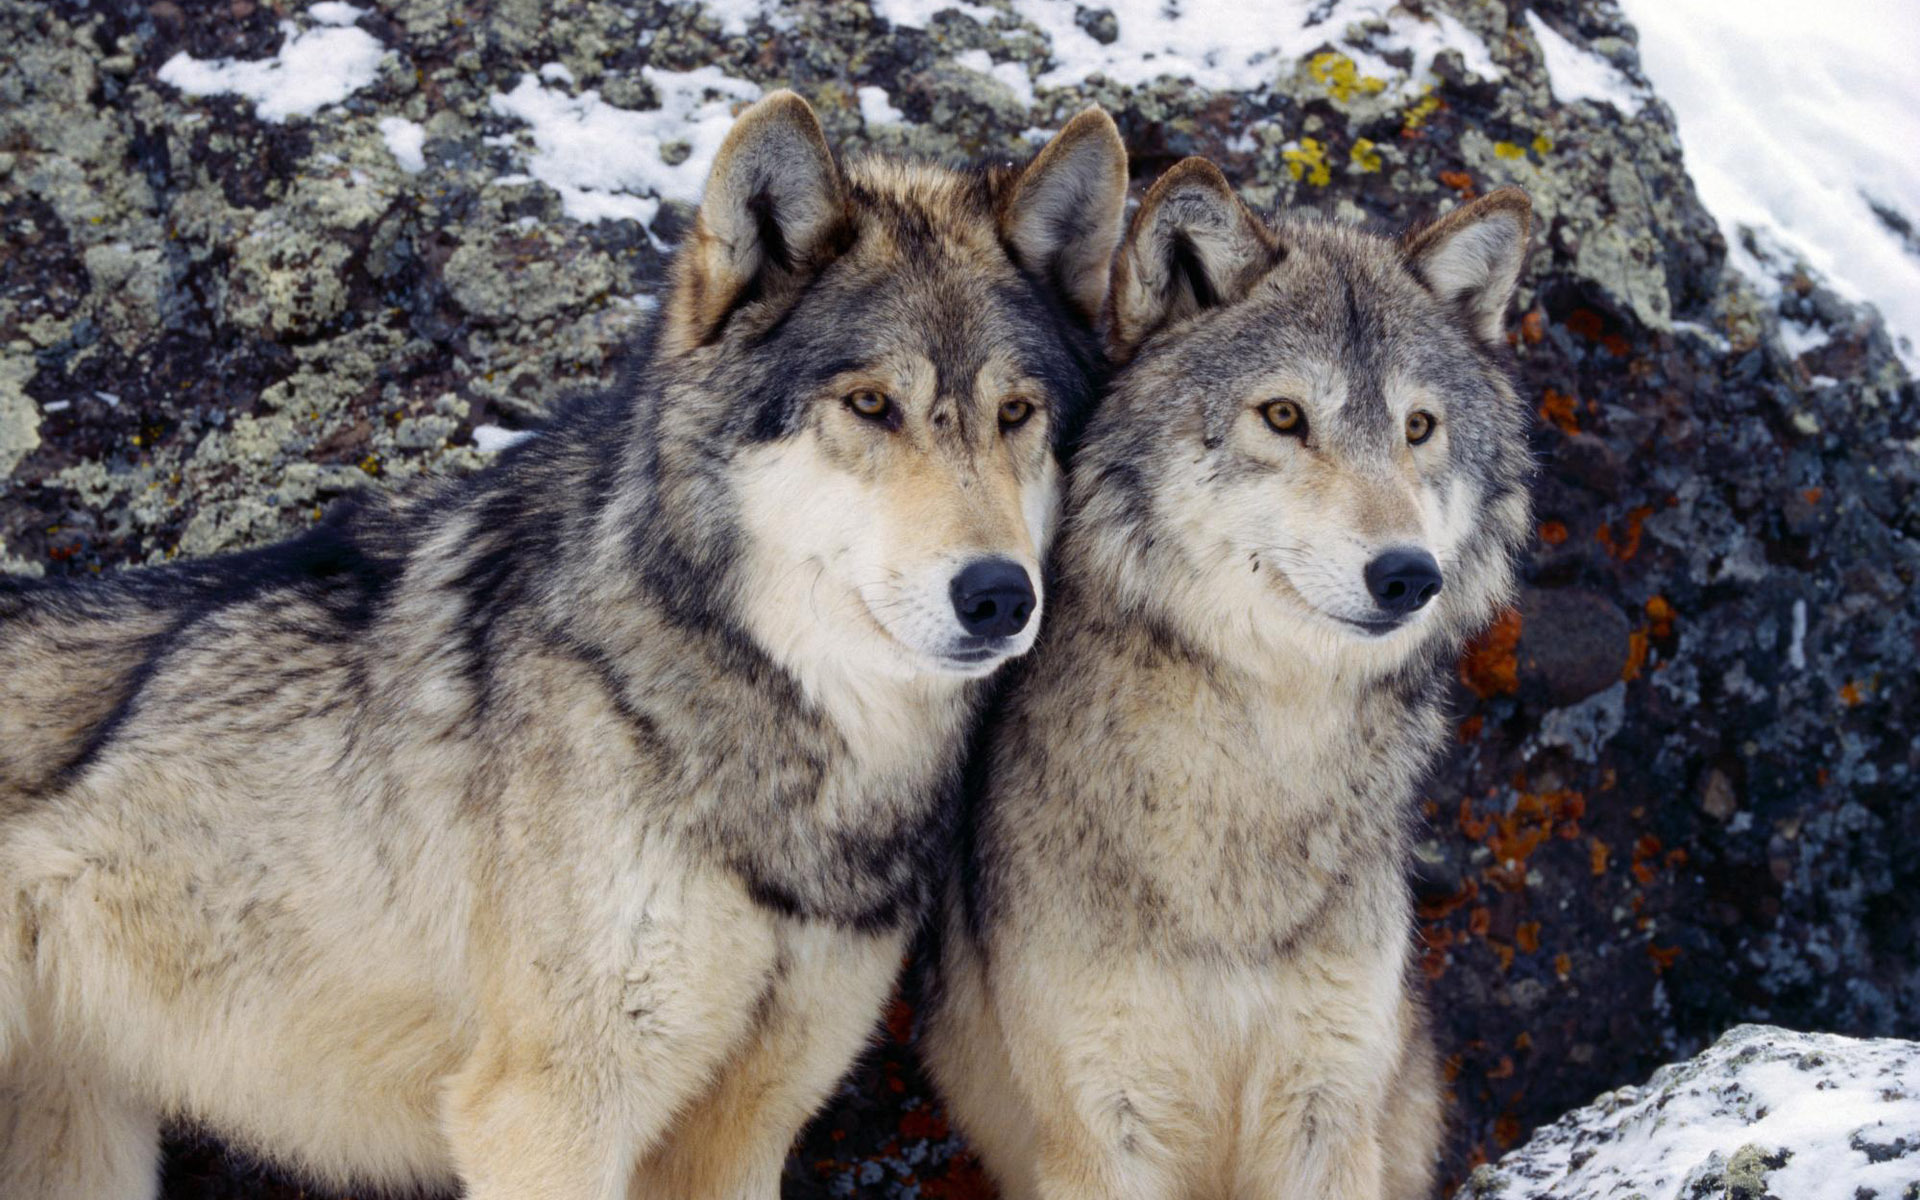 the reintroduction of wolves into the wild